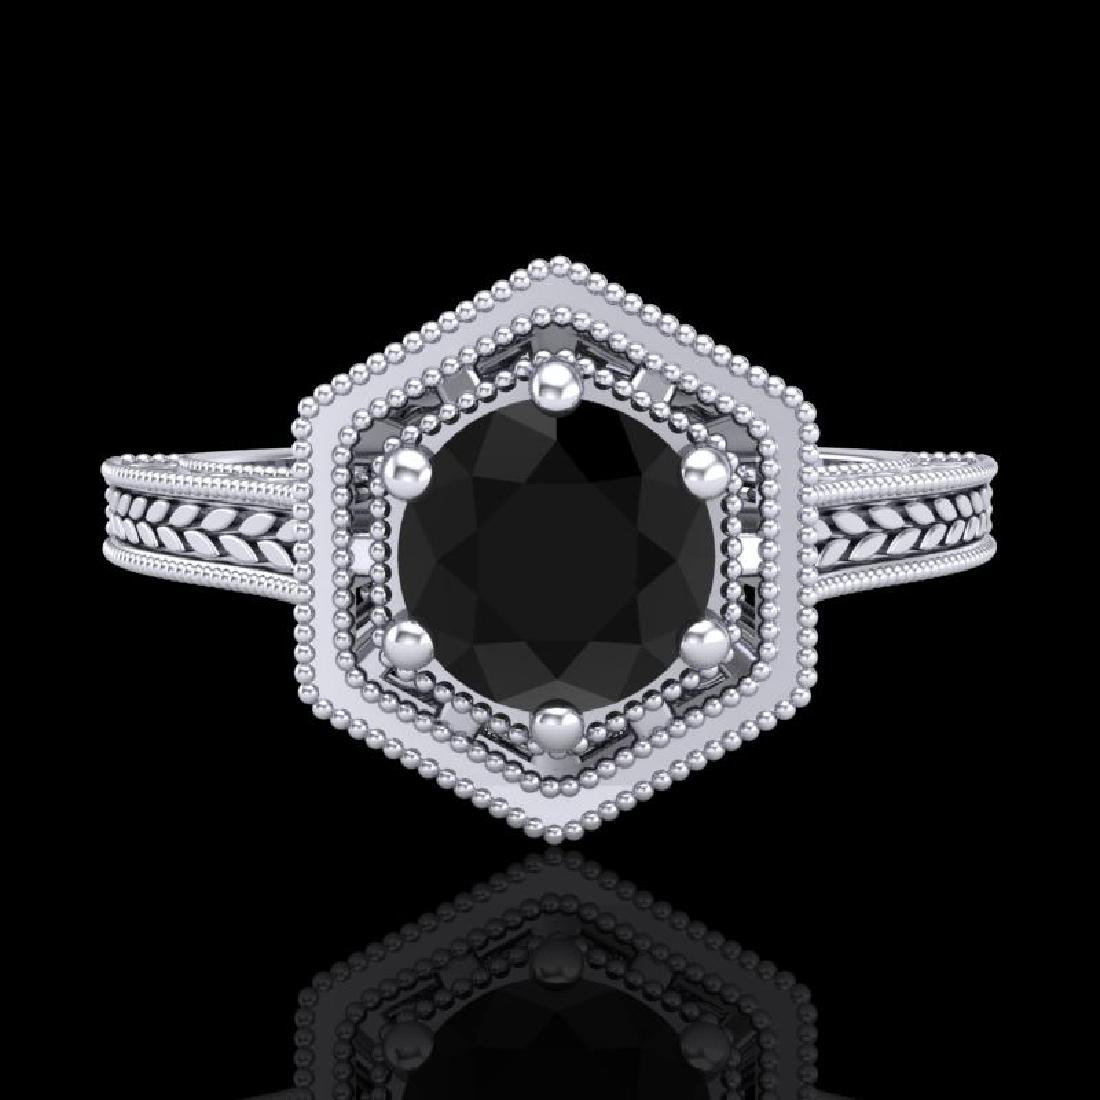 0.77 CTW Fancy Black Diamond Solitaire Engagement Art - 2